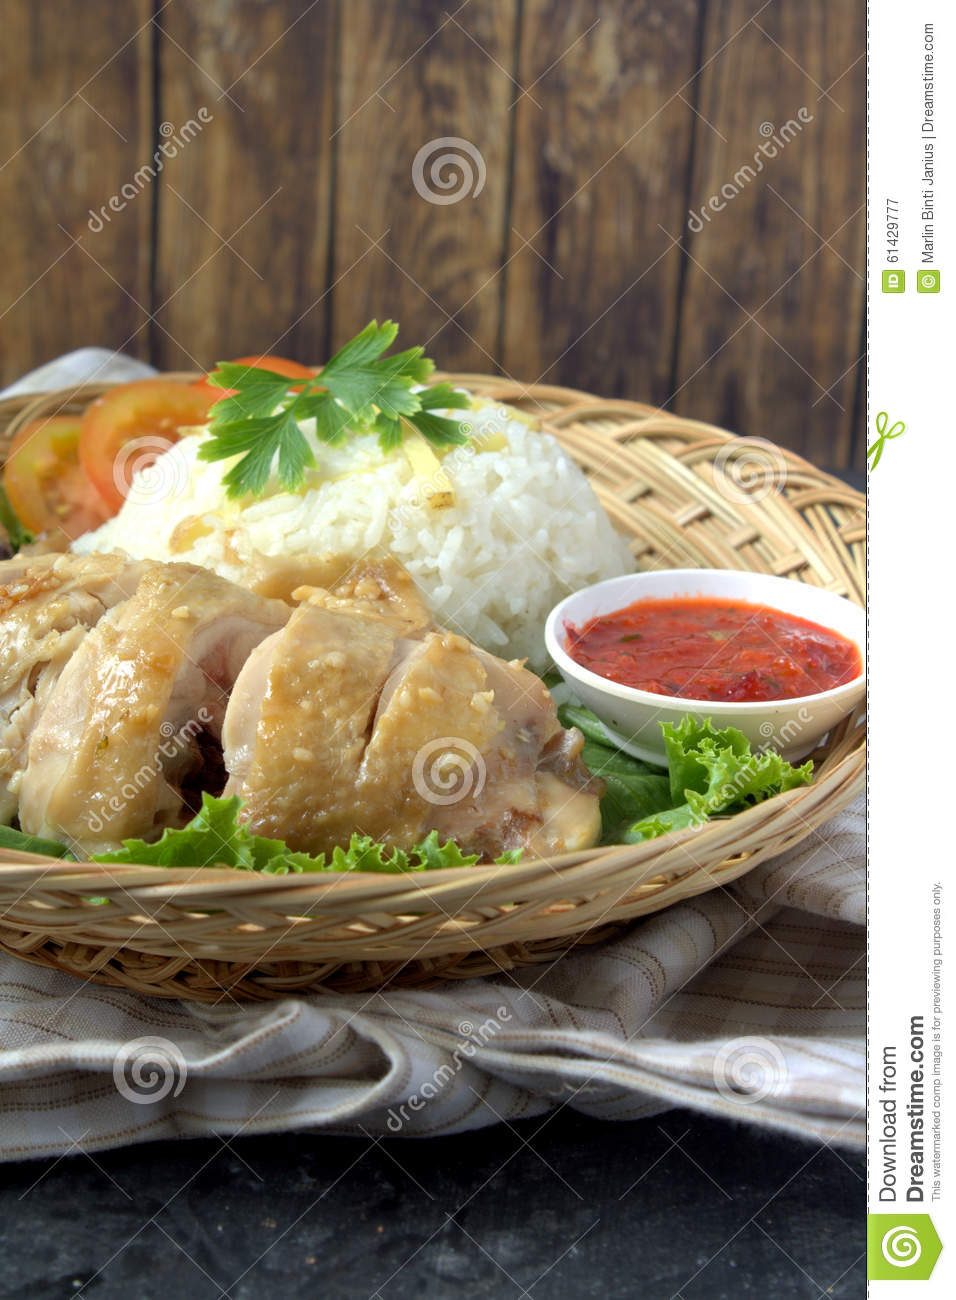 Steamed Chicken Rice Stock Photo - Image: 61429777